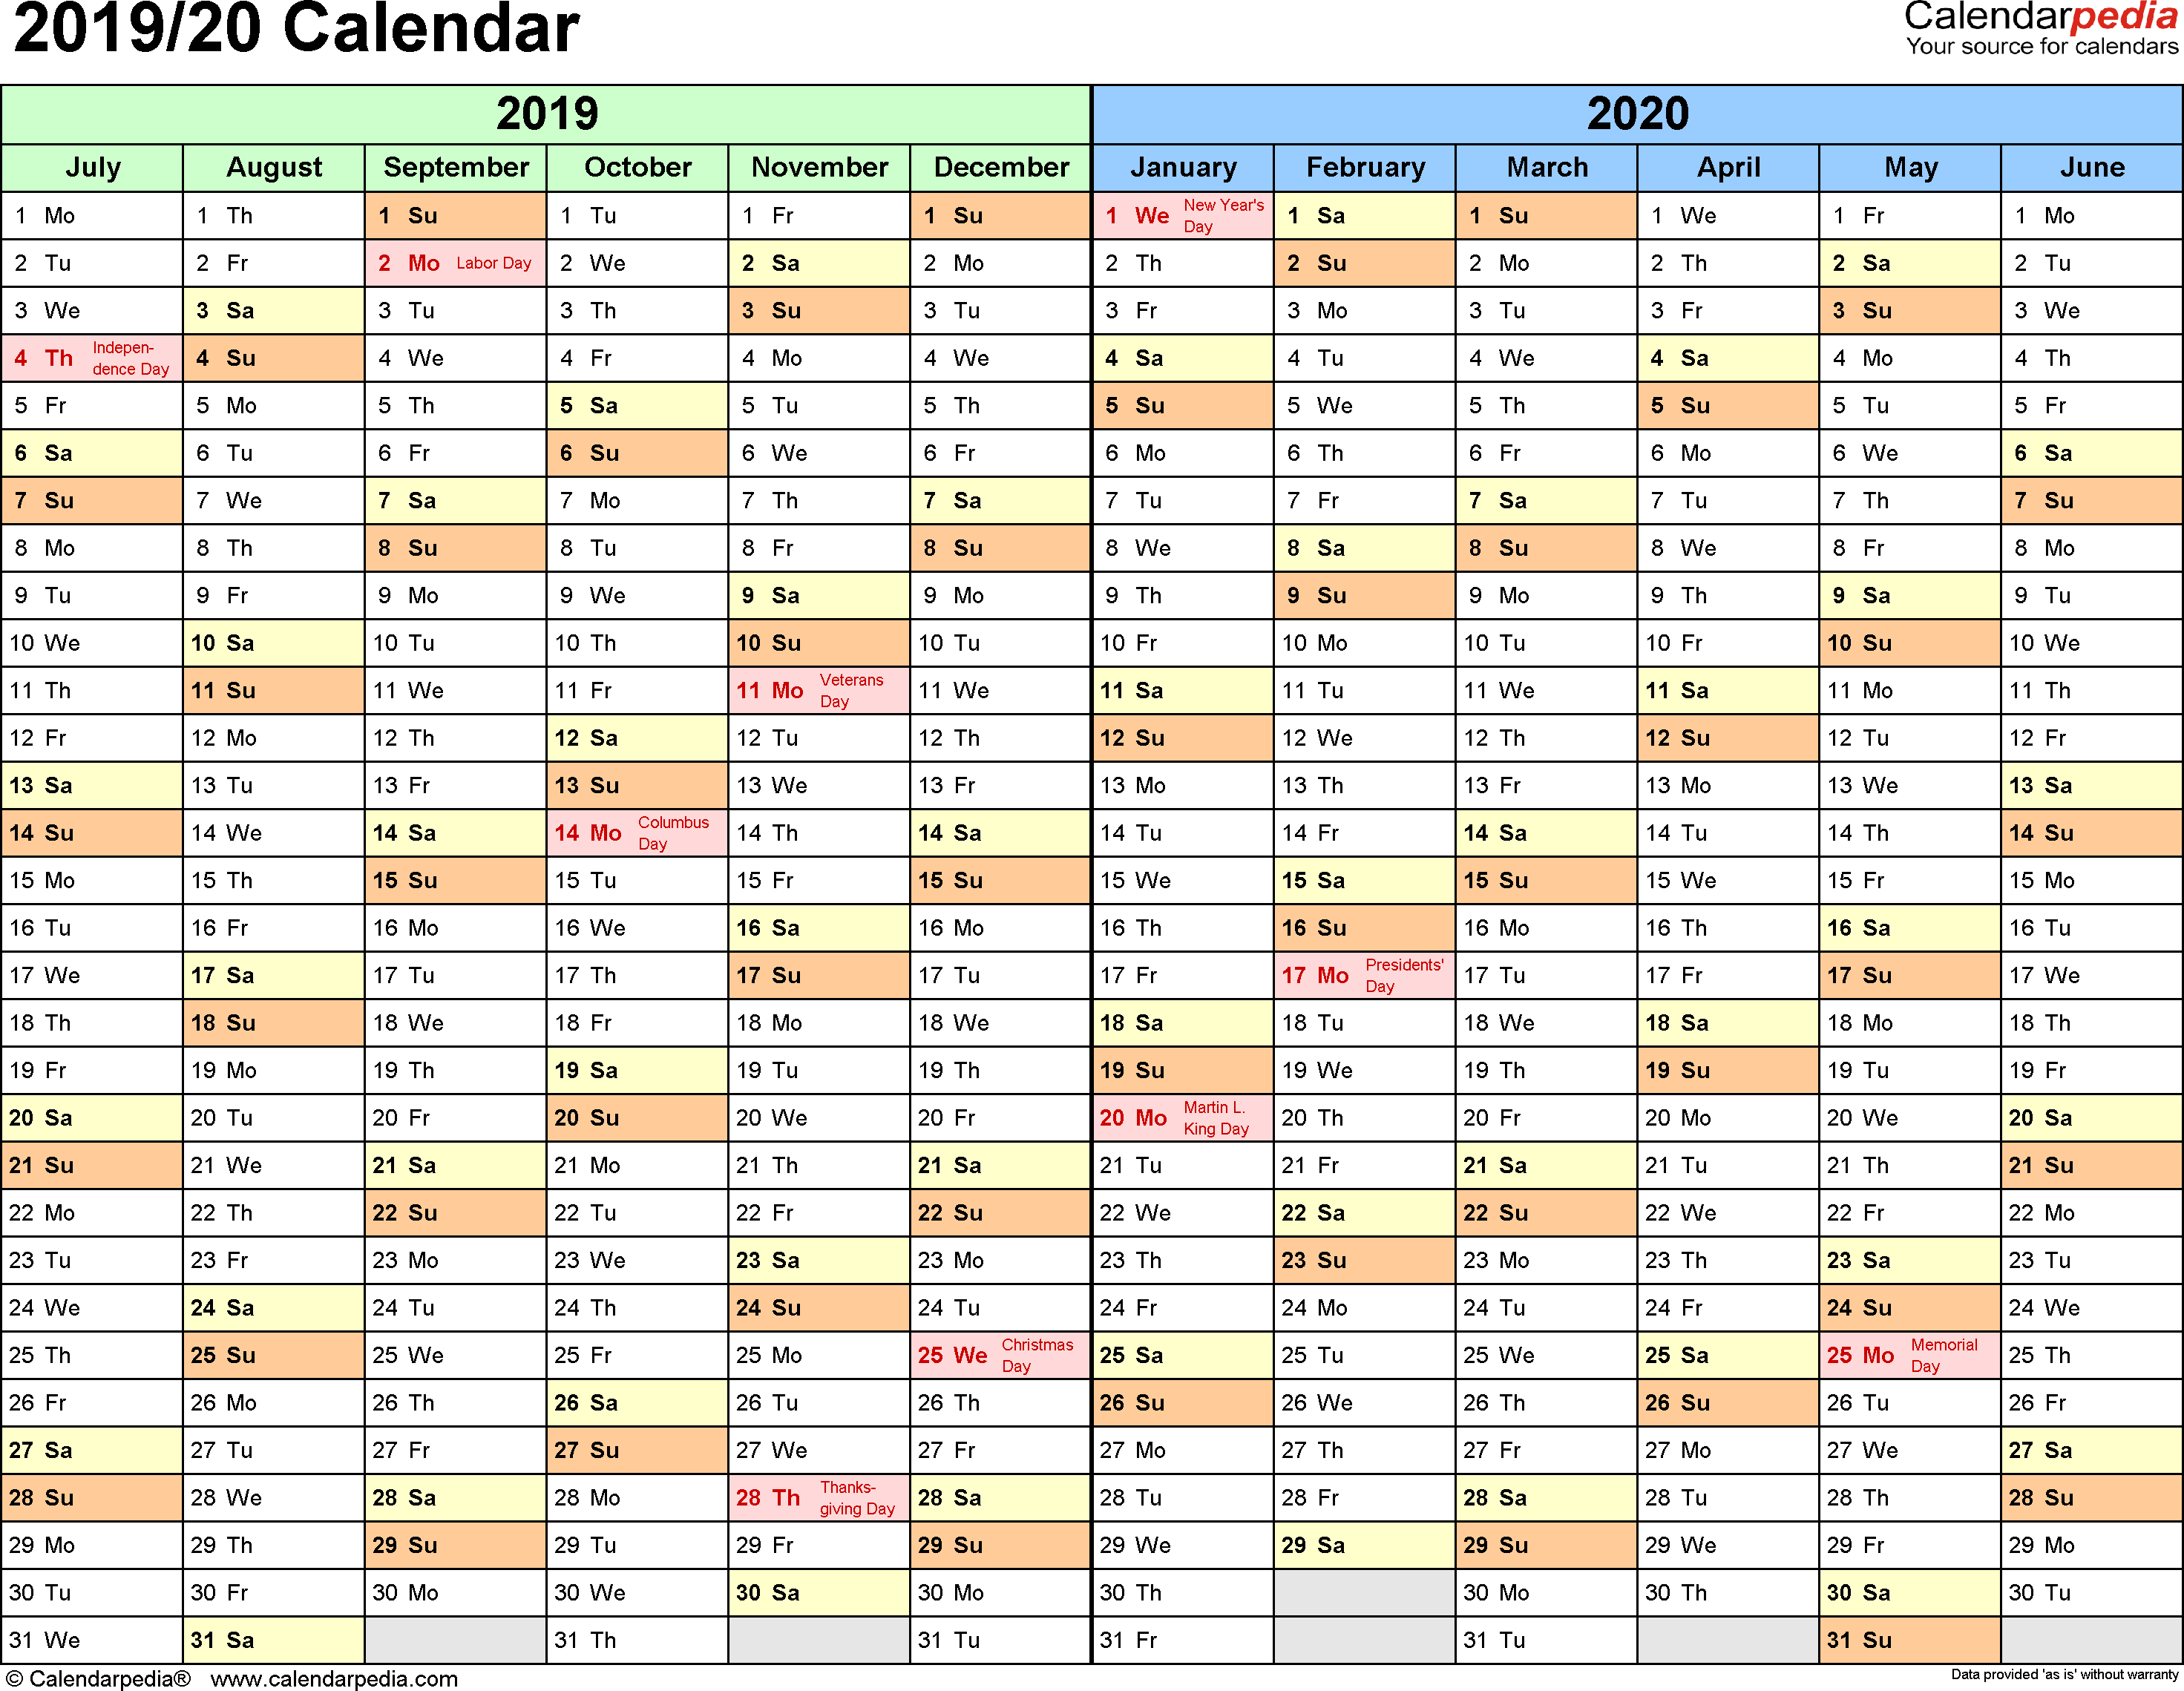 Australian 2019 Year Calendar With Split 20 July To June PDF Templates